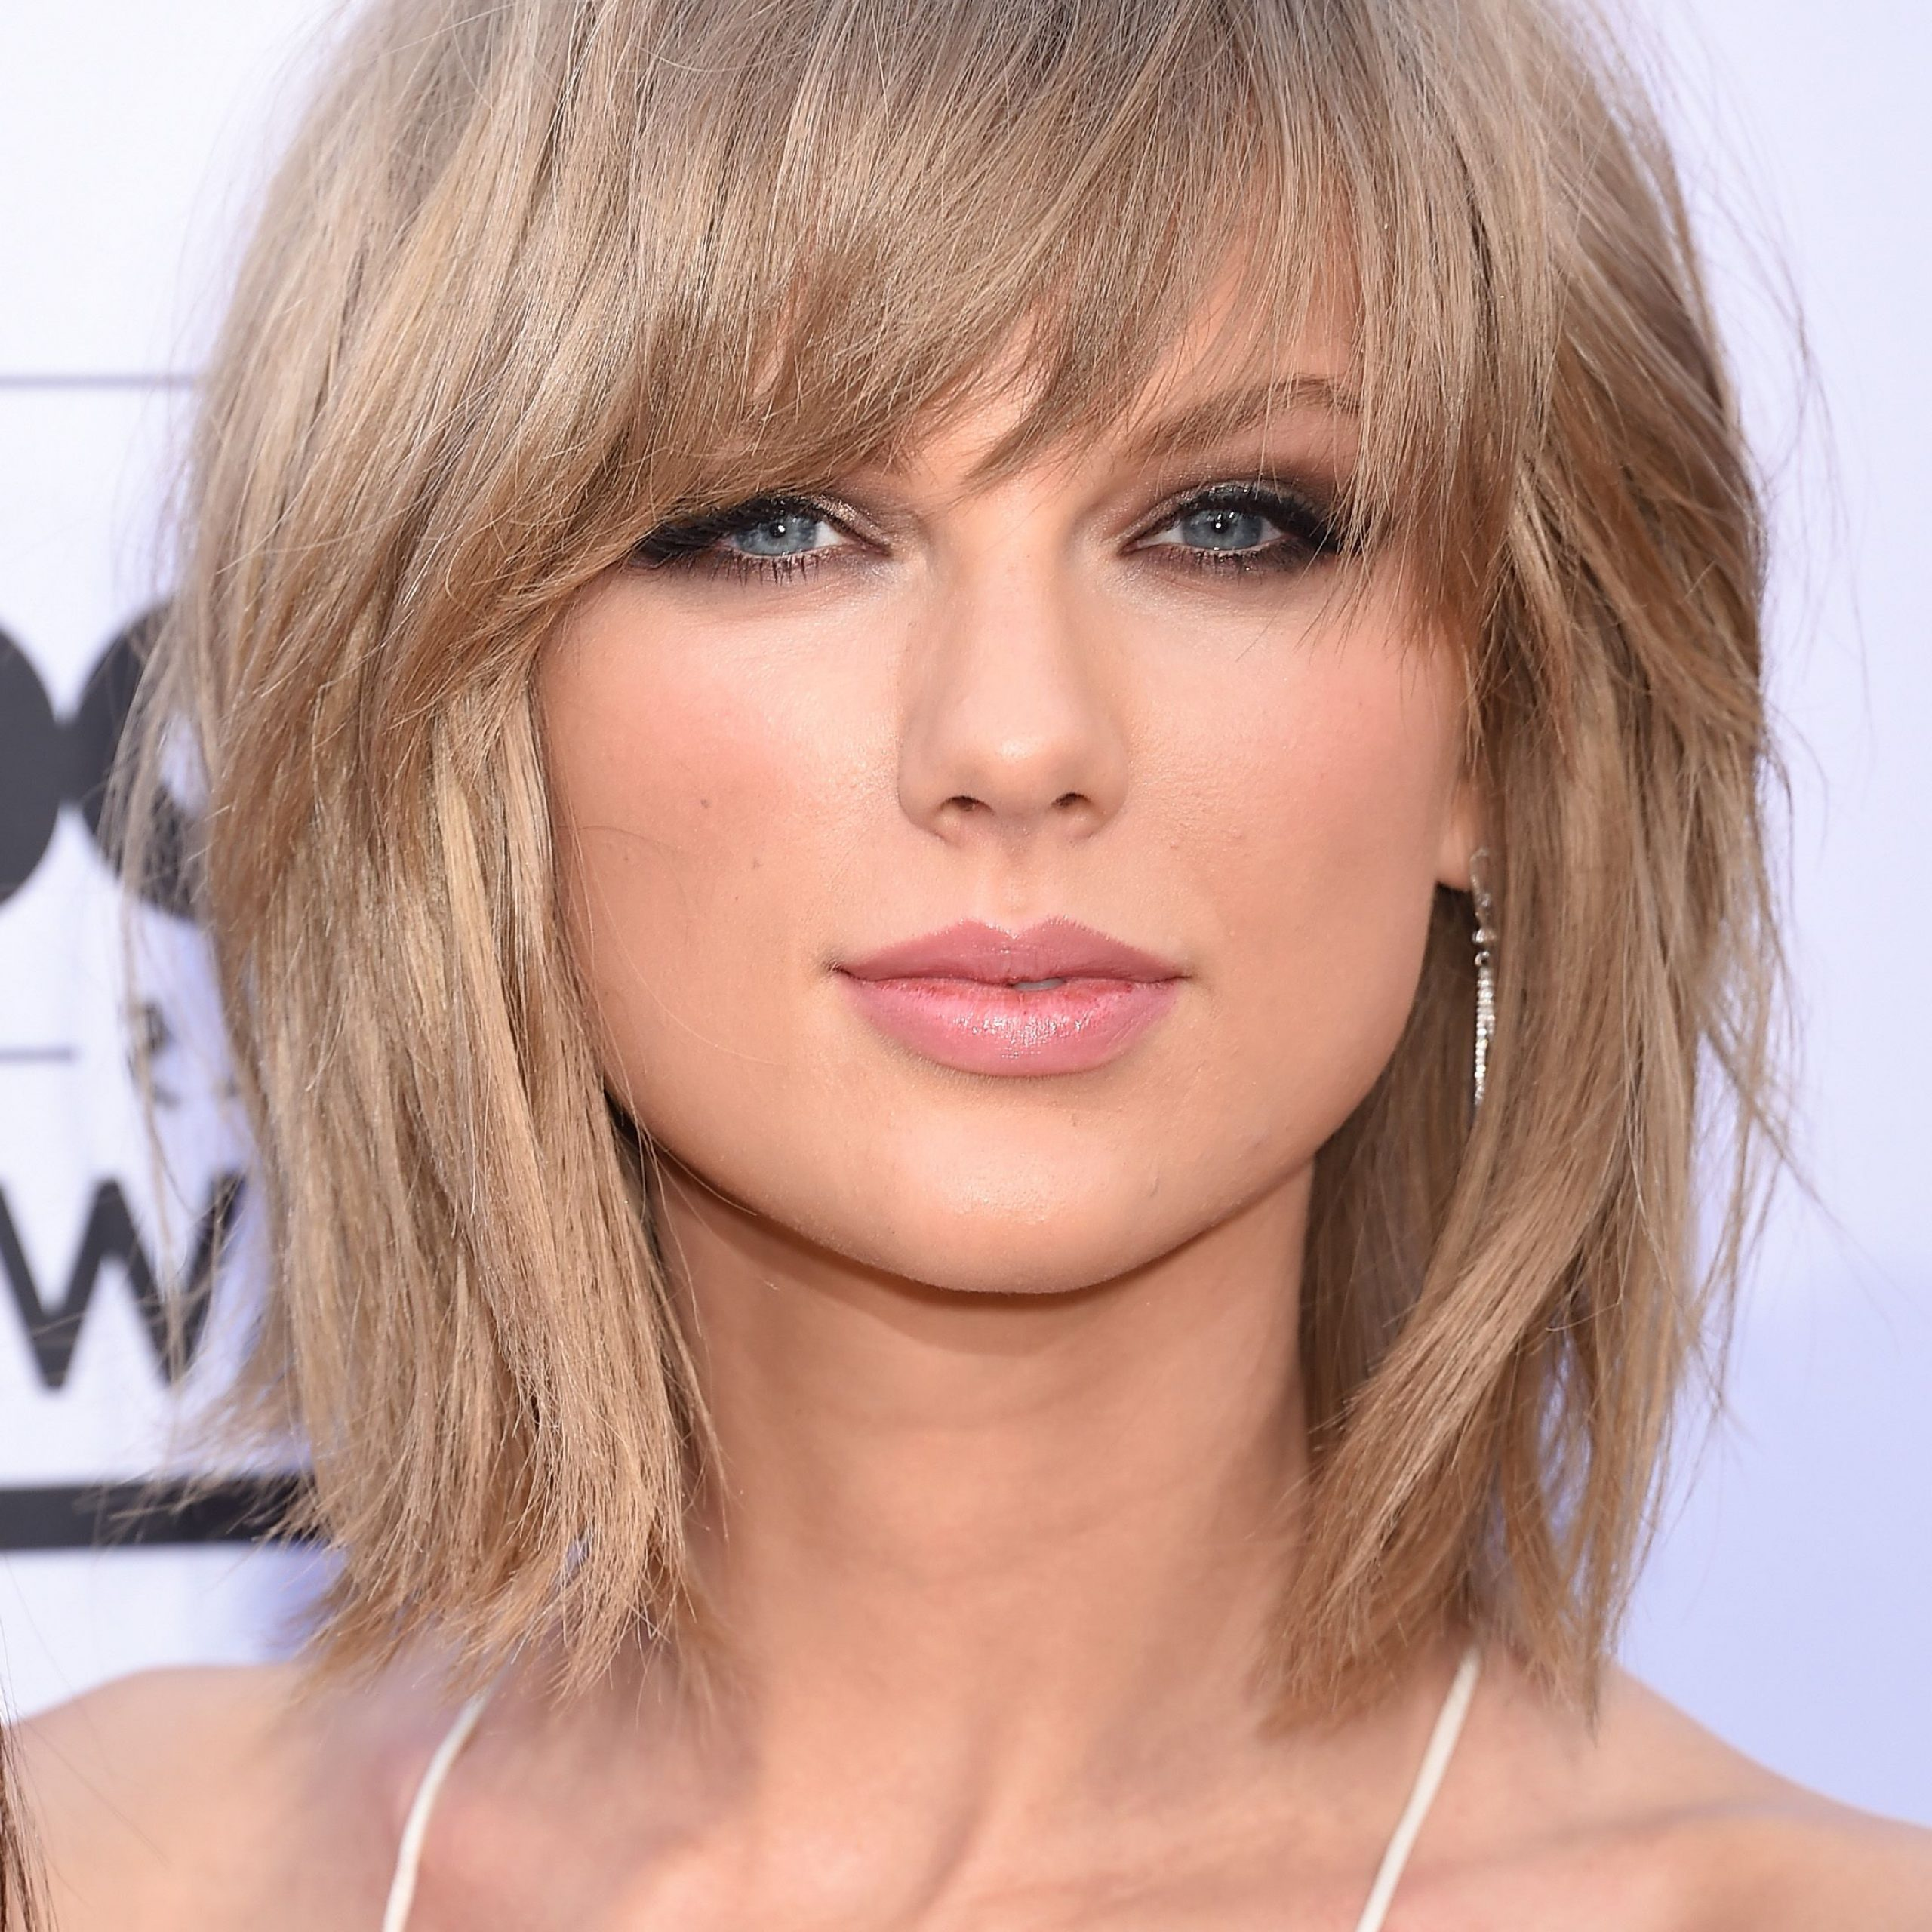 32 Celebrity Shag Haircut Ideas – Shag Hairstyle Long And Short For Waves Of Color Shag Haircuts (View 4 of 20)